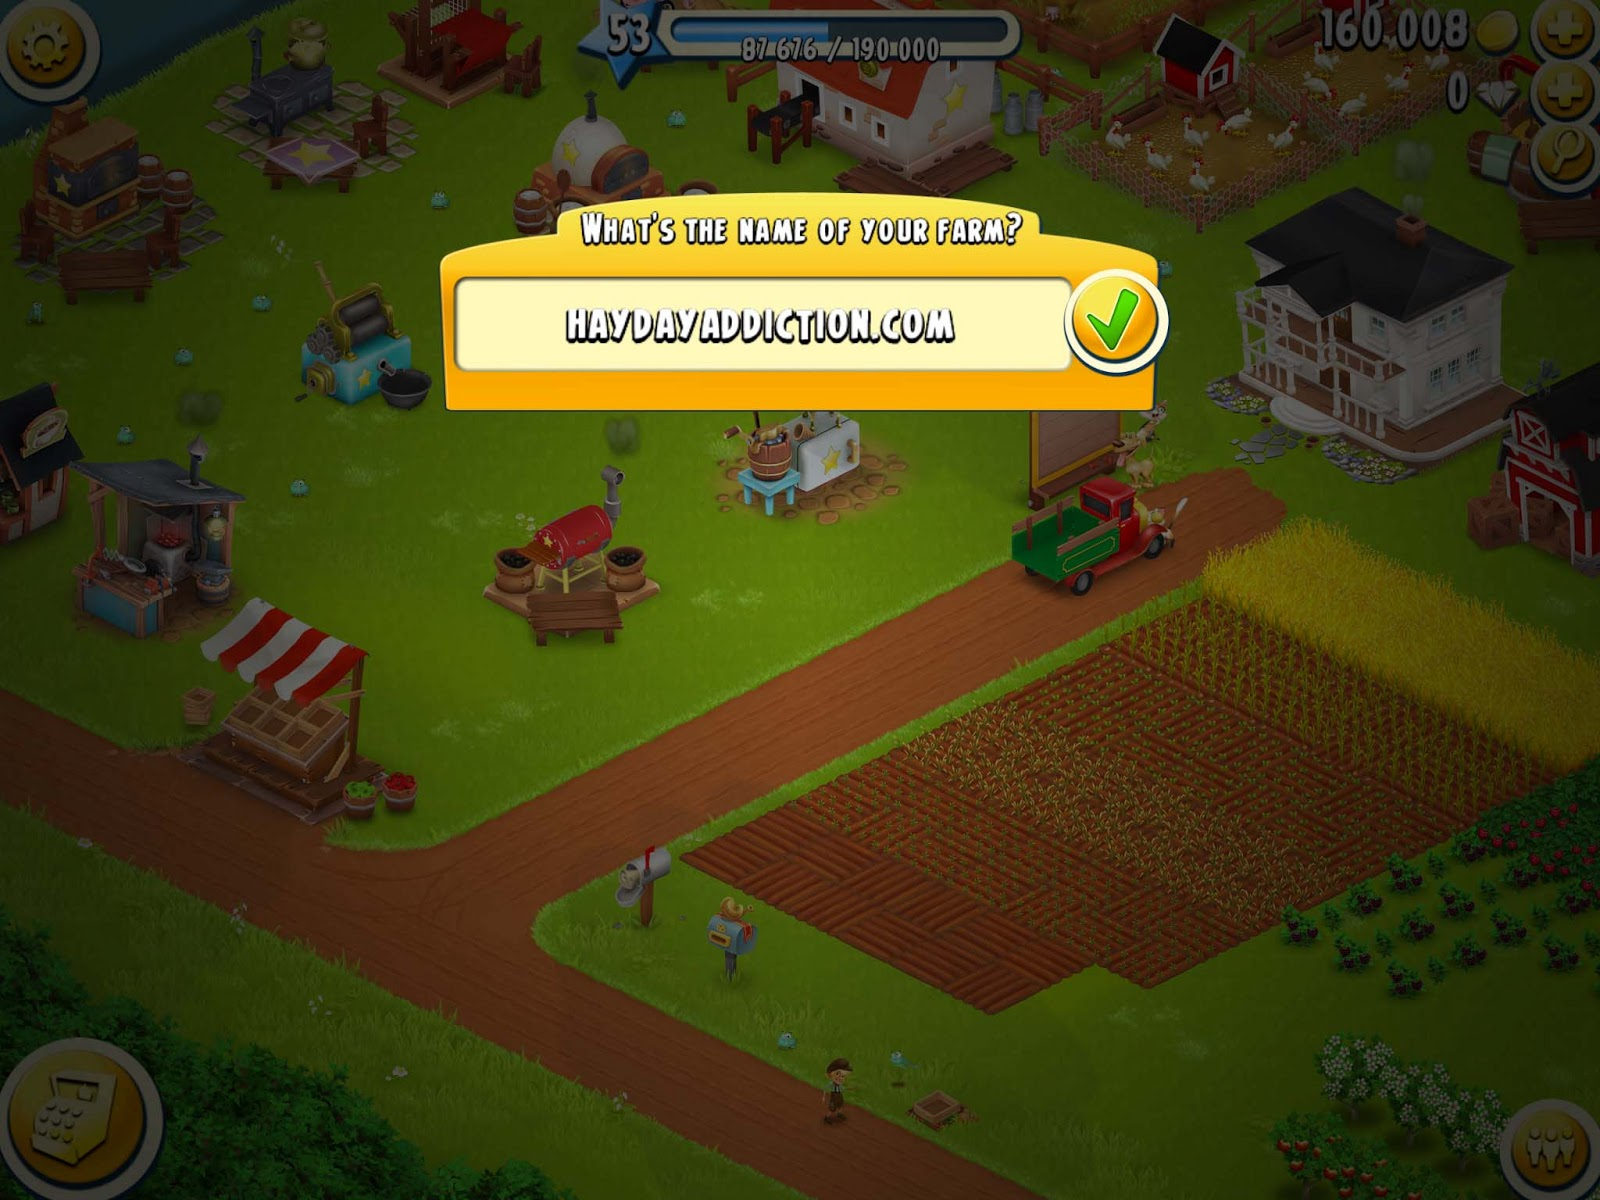 Hay Day Addiction: How to change your Roadside Shop names